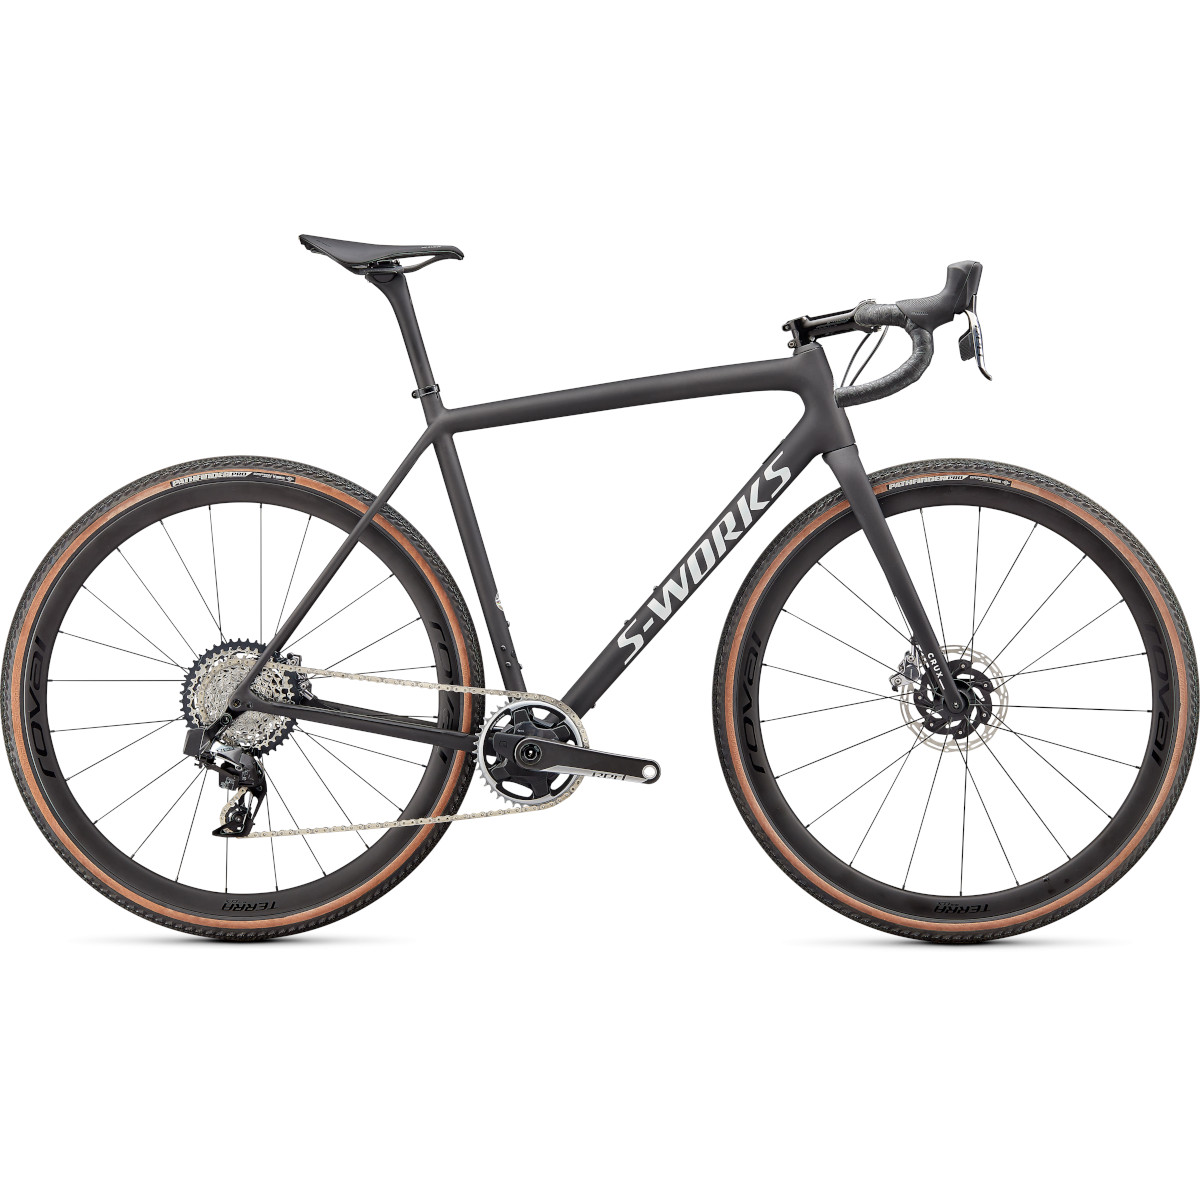 Specialized S-WORKS CRUX - RED eTAP AXS - Carbon Gravel Bike - 2022 - satin carbon / spectraflair / gloss abalone